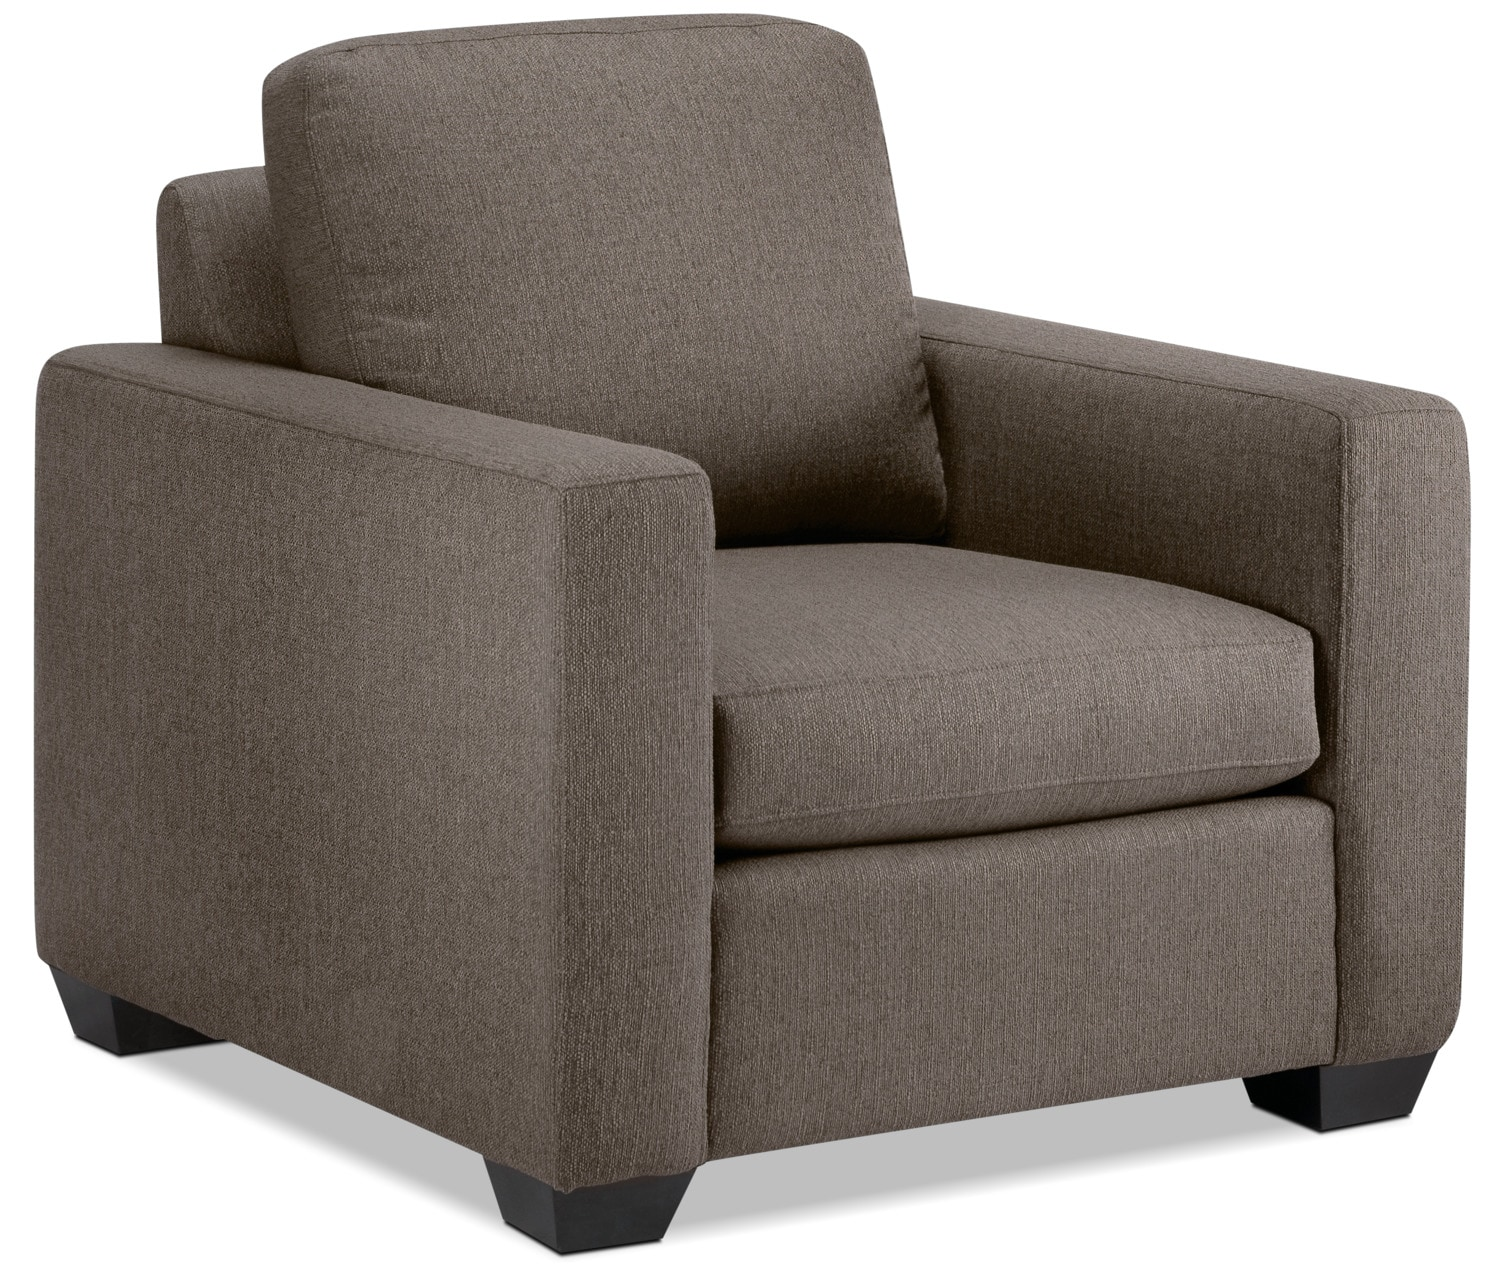 Living Room Furniture - Hilary Chair - Taupe